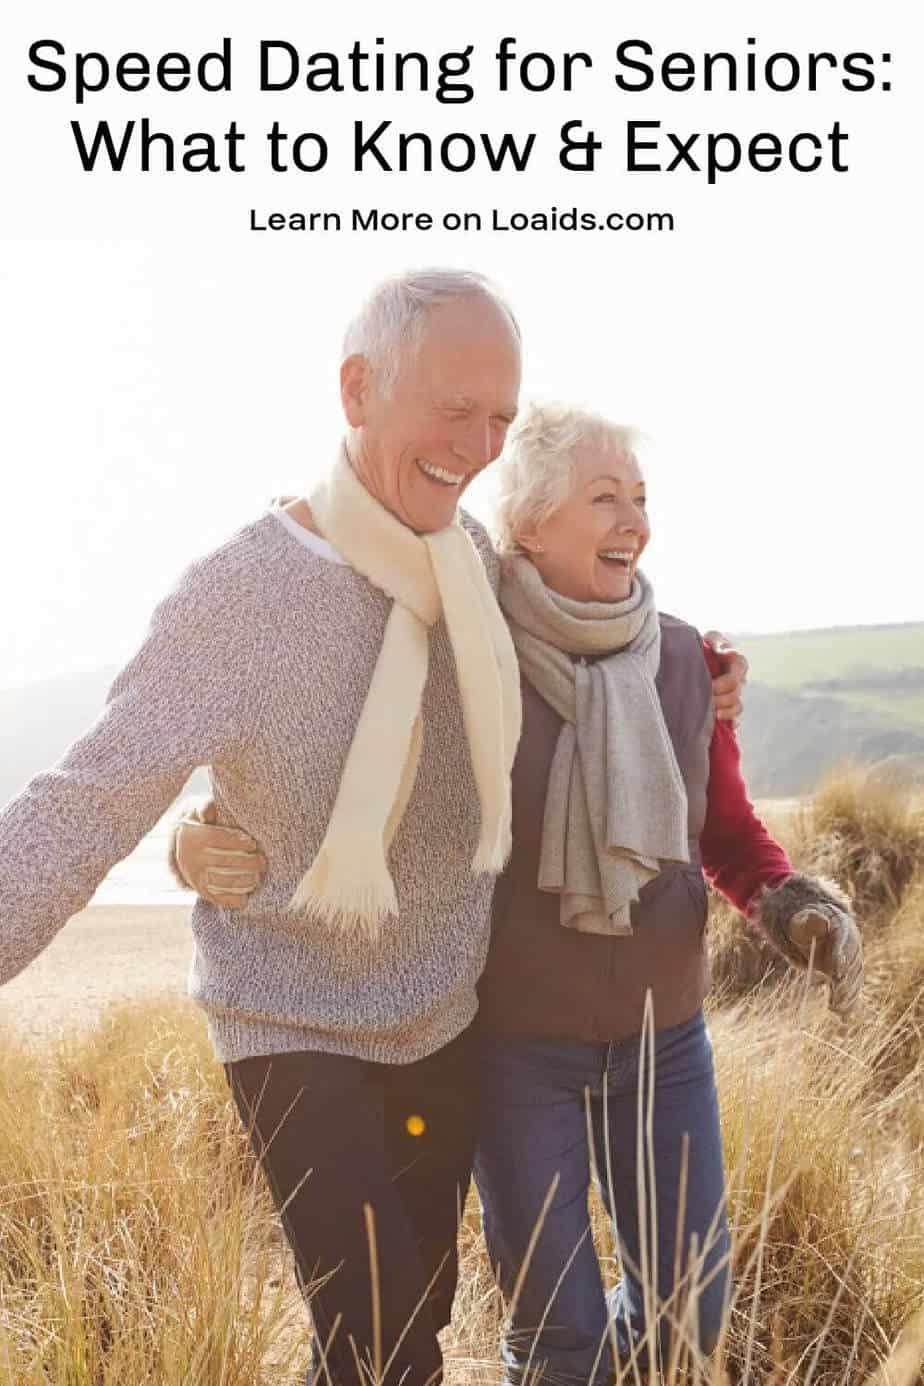 Have you ever wondered how speed dating for seniors works? Check our article to find out how it works, what to expect, and more!